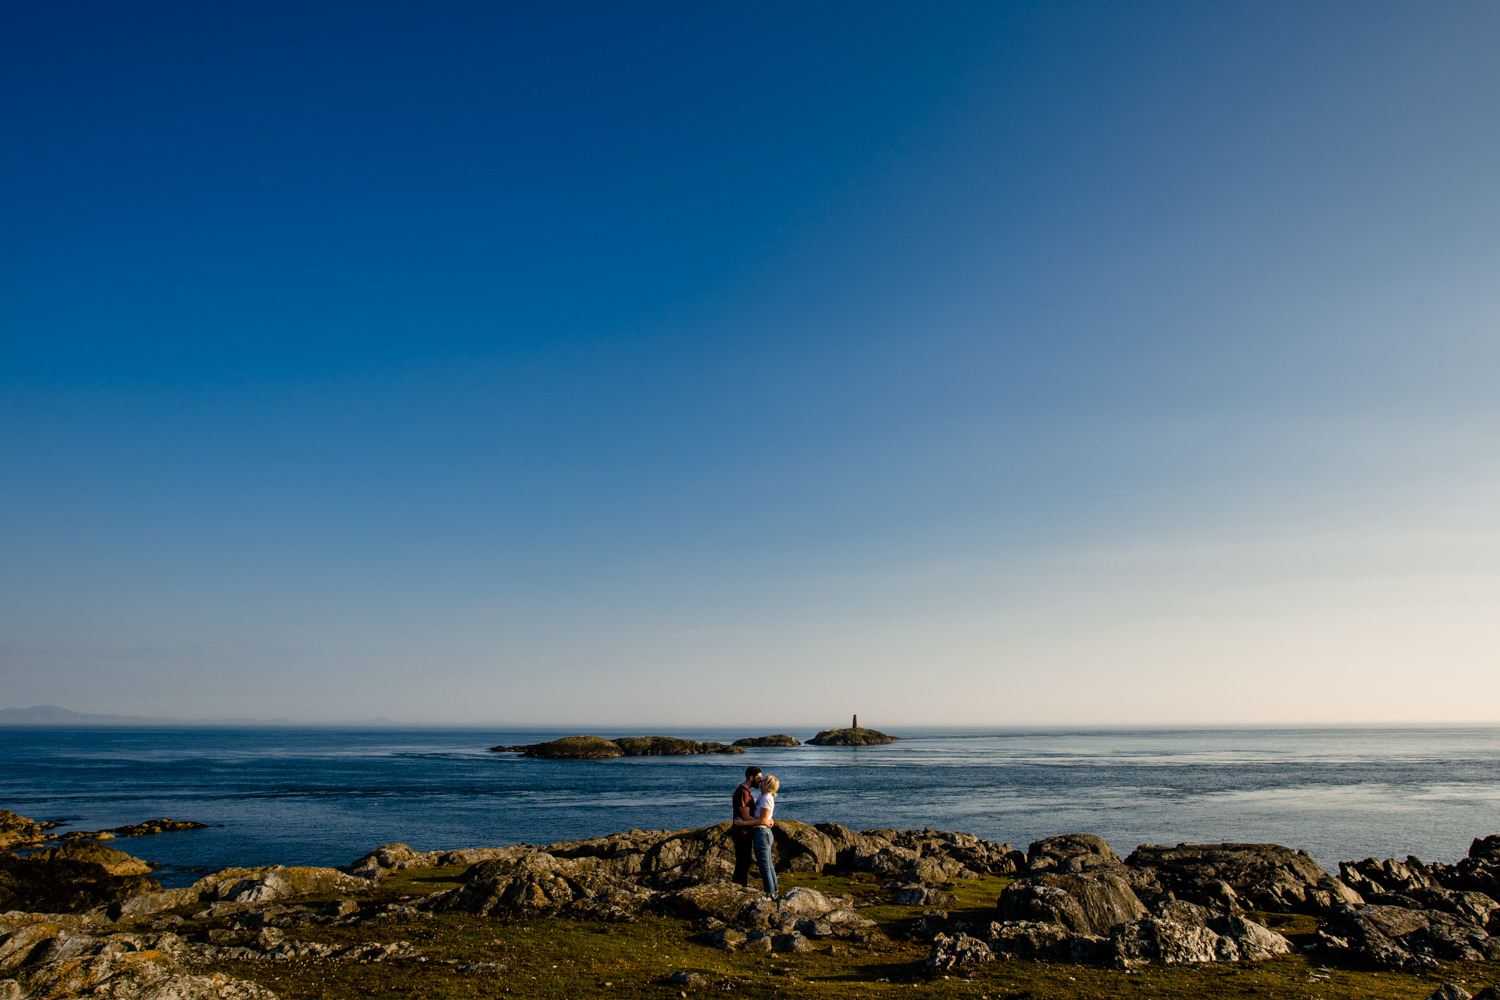 A view from the headland looking out to sea, from Kate & Sean's sunny pre wedding shoot on Holy Island, by Anglesey wedding photographers Zoe & Tom